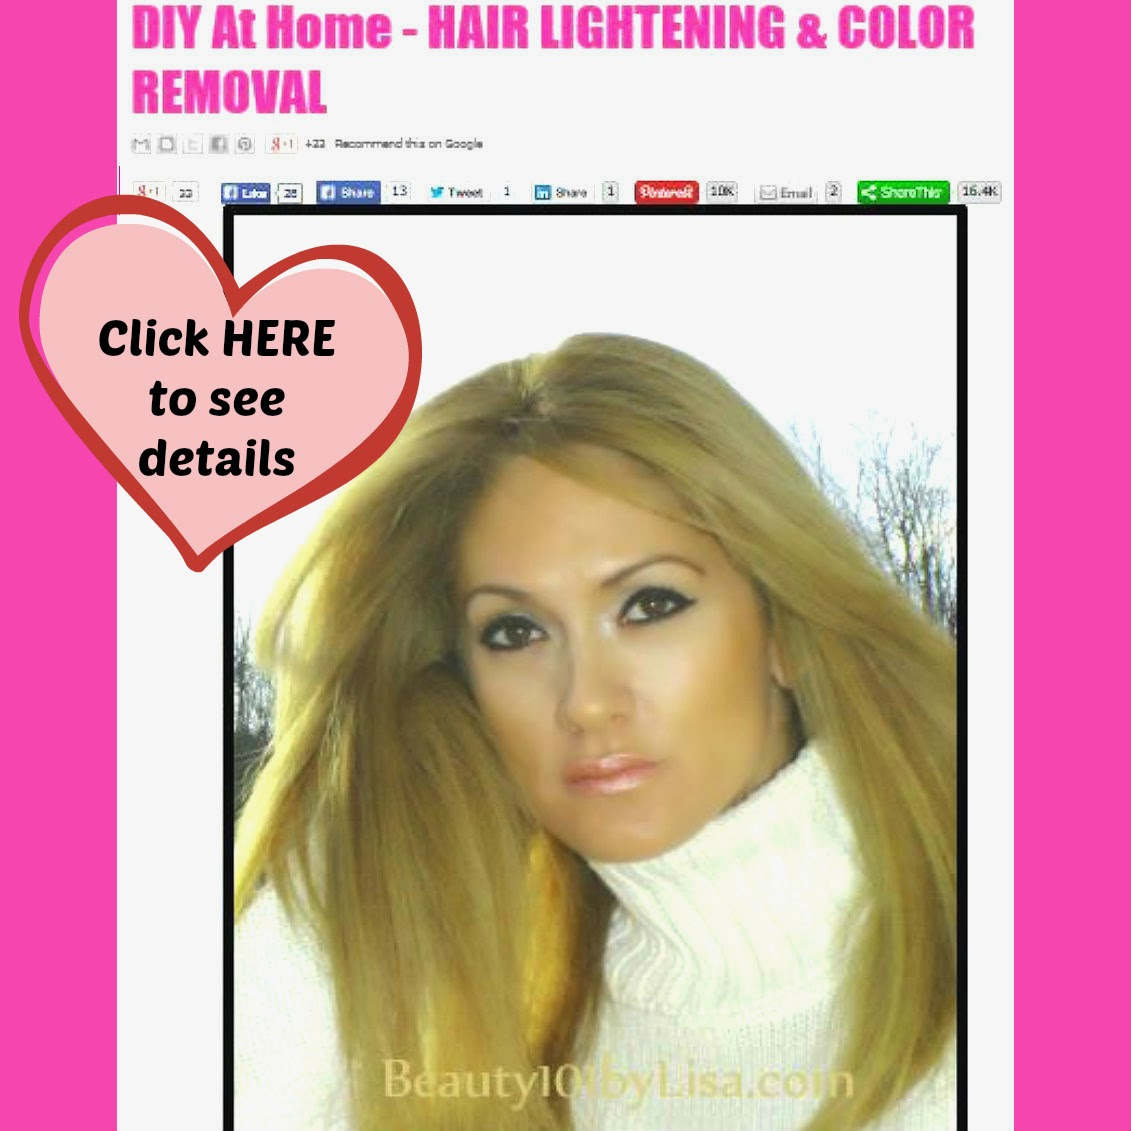 http://www.beauty101bylisa.com/2014/03/diy-at-home-hair-lightening-color.html